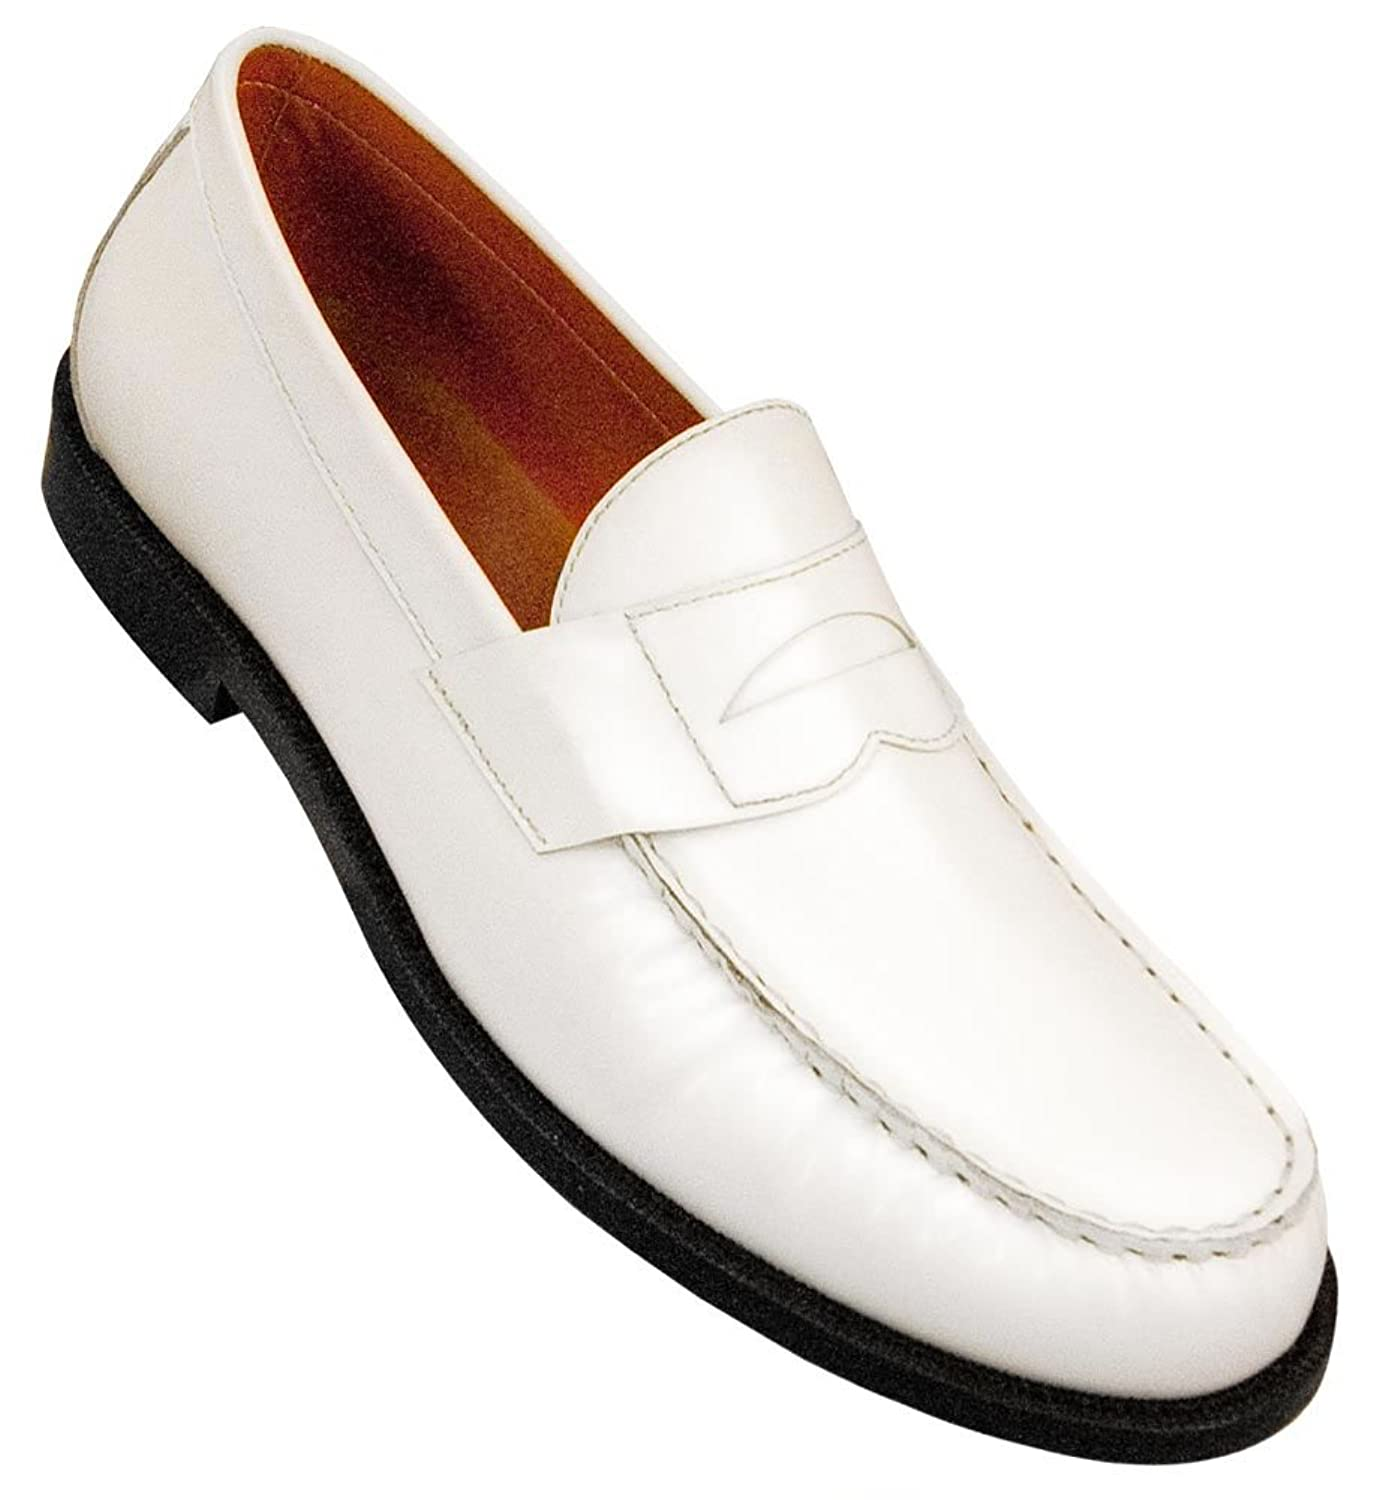 1950s Style Mens Shoes Aris Allen Mens White Dance Loafers $48.95 AT vintagedancer.com